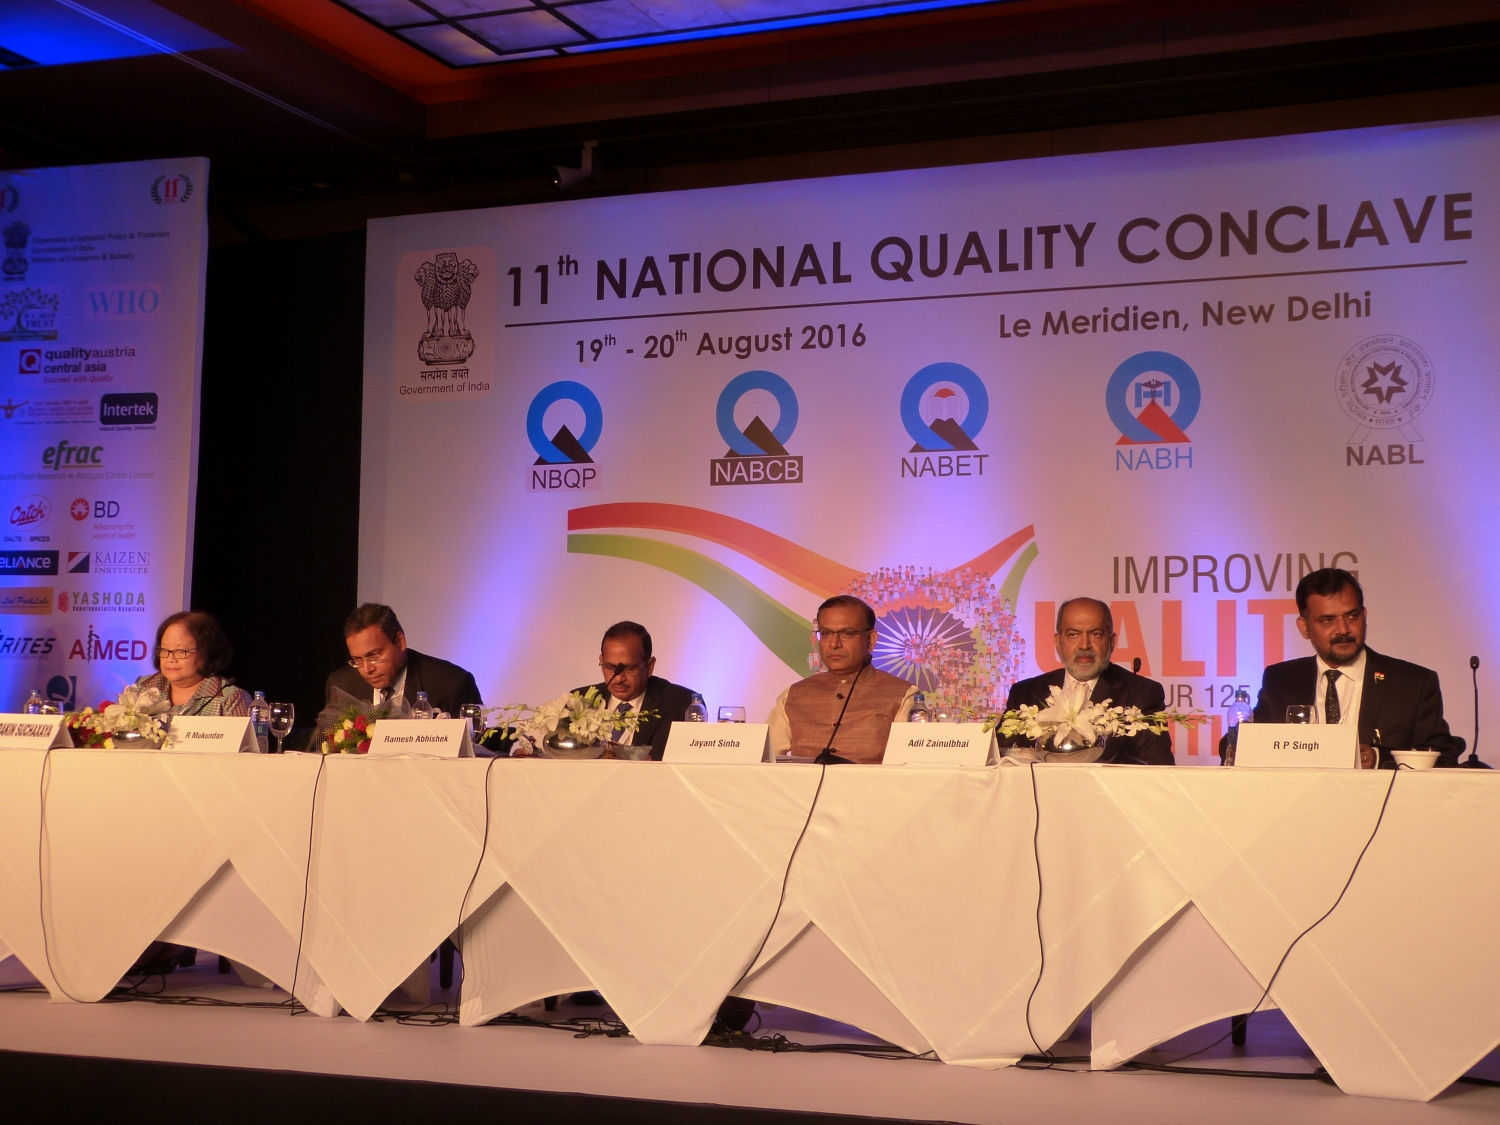 De gauche à droite: Dr. Prakin Suchaxaya - Regional Adviser for Nursing and Midwifer, WHO regional office for South-East Asia (SEARO) ; R. Mukundan - Chairman of the NBQP ; Ramesh Abhishek - Secretary of the DIPP ; Shrí Jayant Sinha - Hon'ble MoS, Civil Aviation ; Adil Zainubhai - Chairman of the Quality Council of India ; Dr. Ravi P. Singh - Secretary General of the Quality Council of India